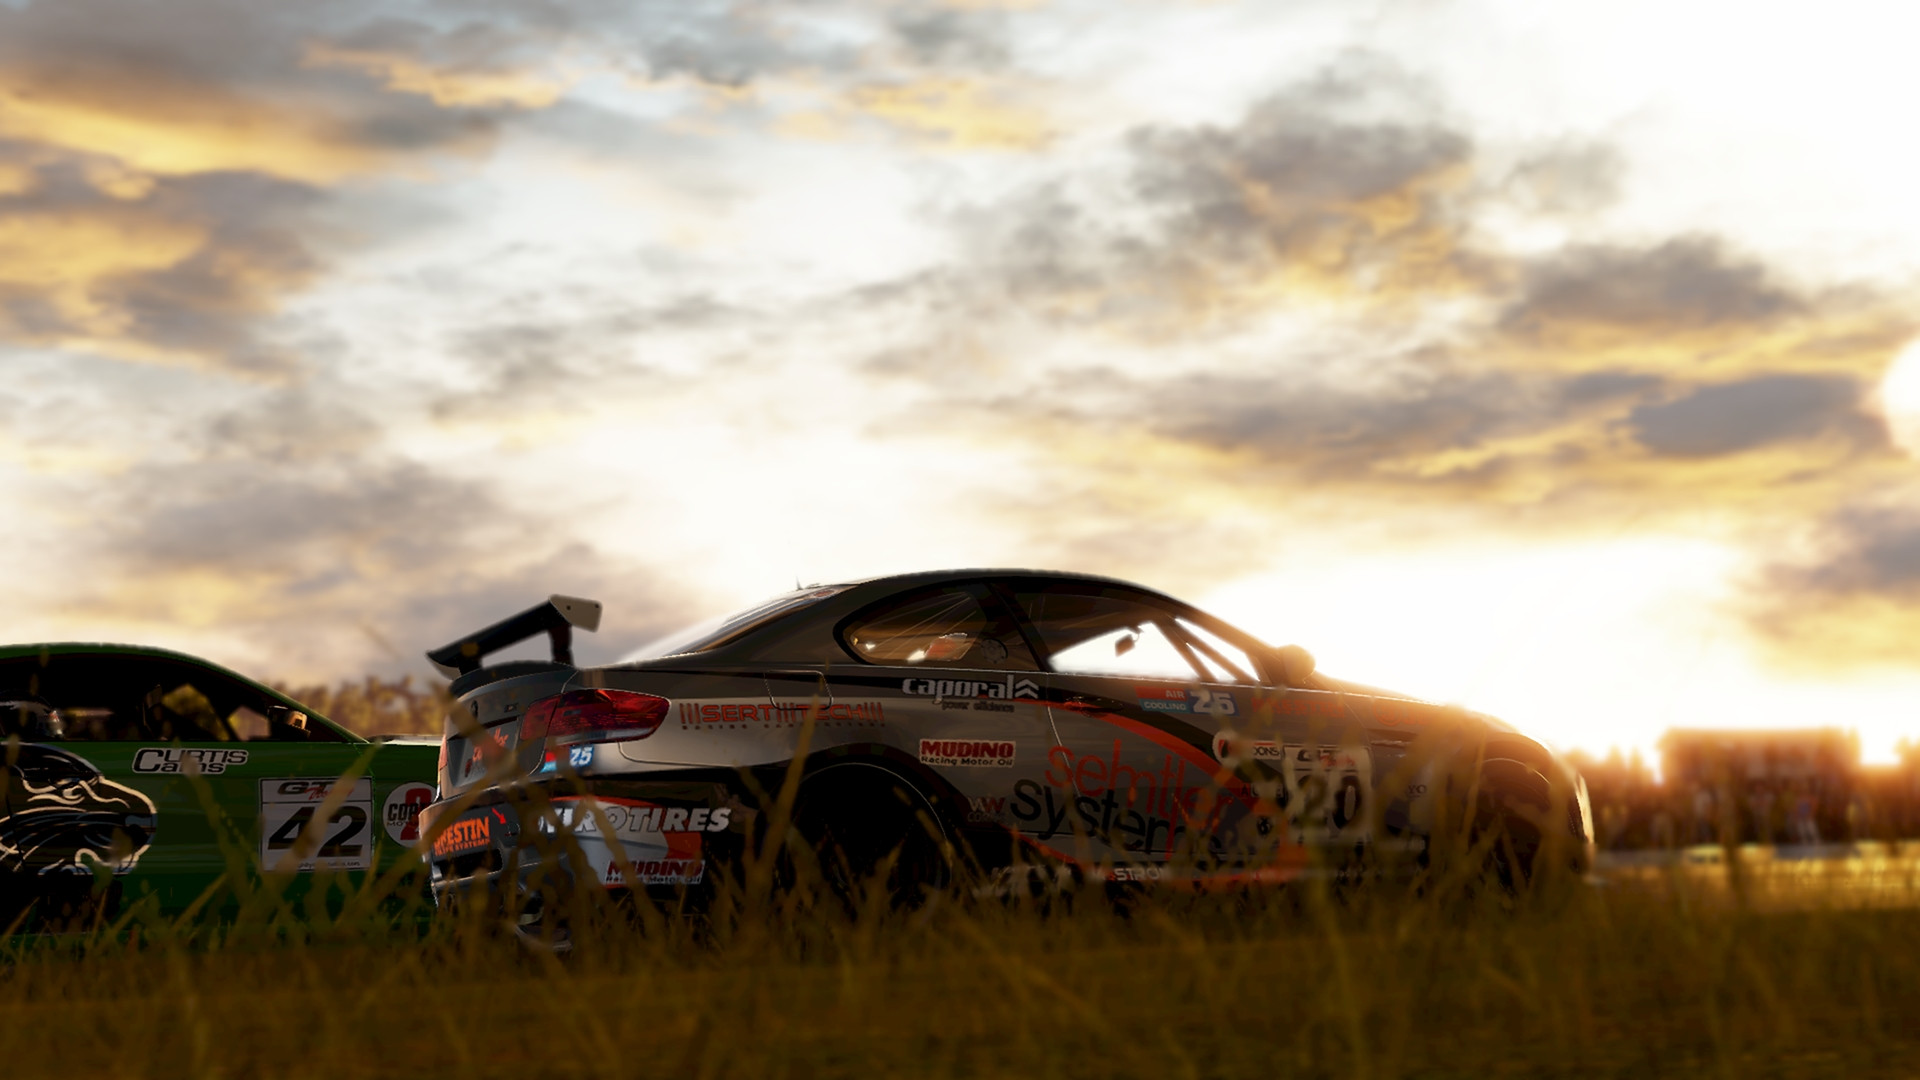 project-cars_PS4_2312.jpg